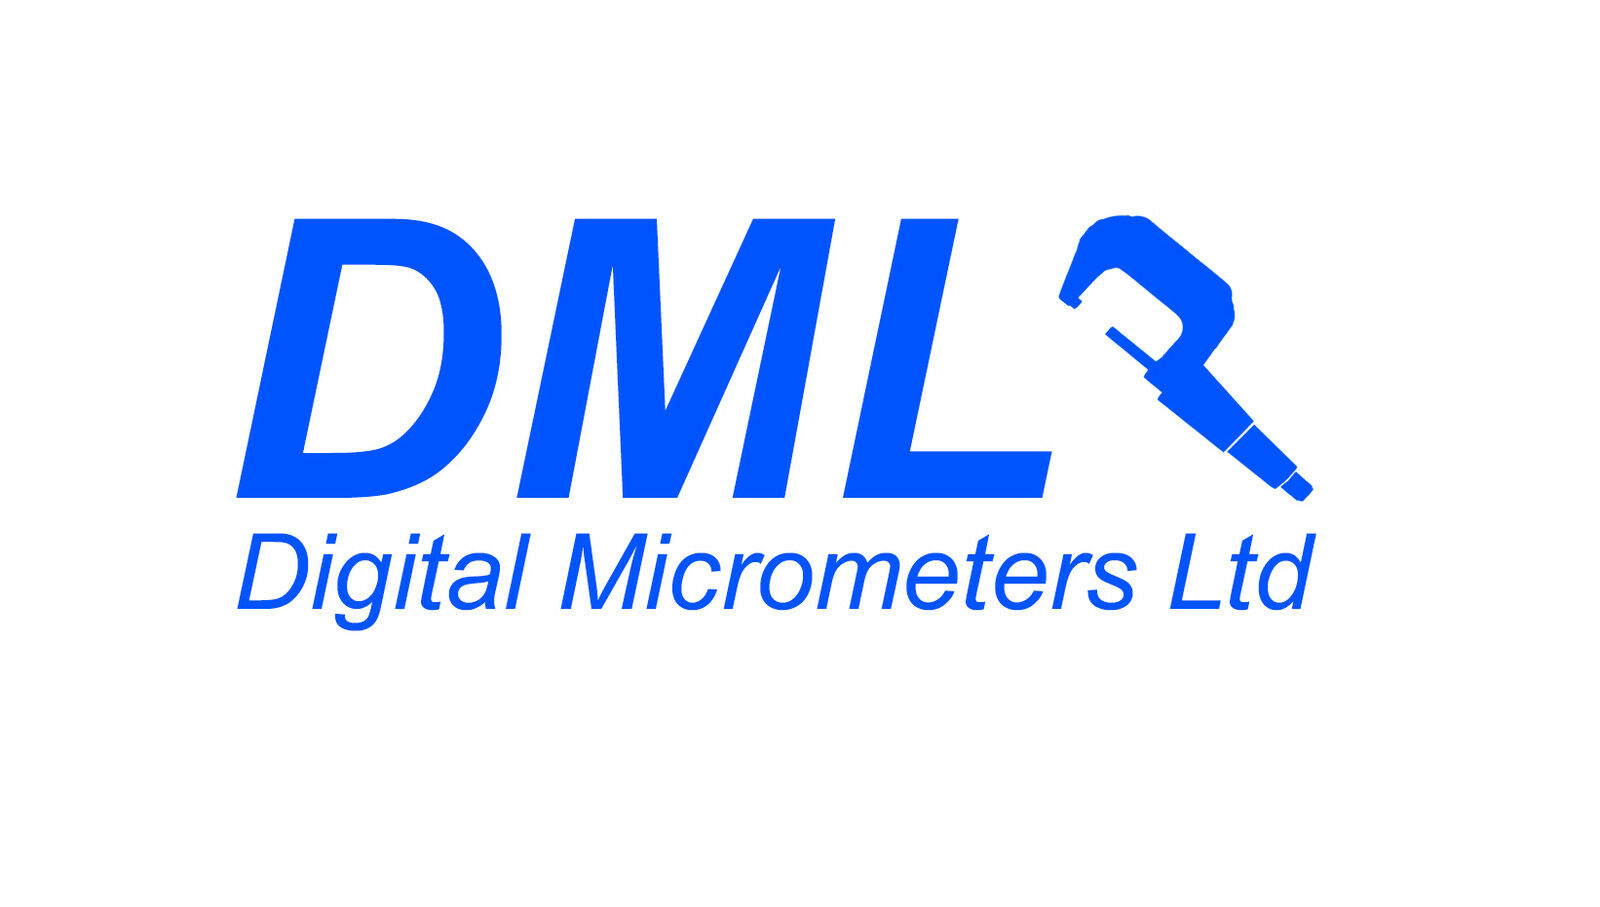 Digital Micrometers Ltd